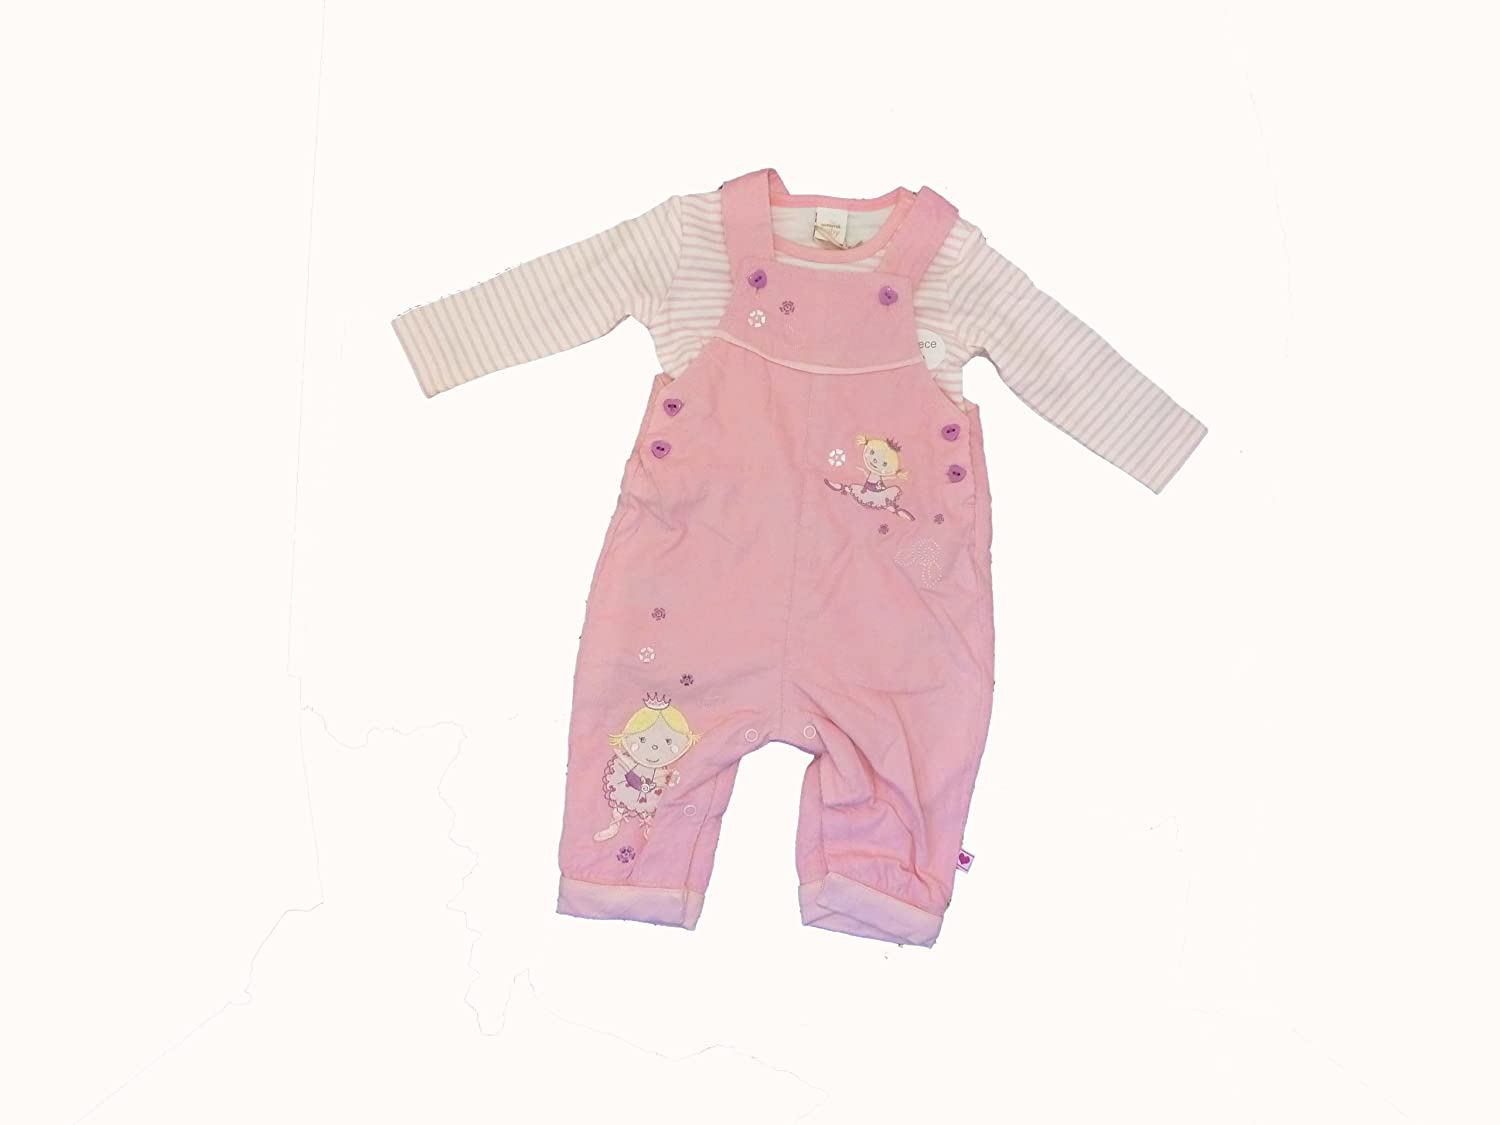 63c64286d Adams Baby Girl Dungaree Set with Bodysuit Romper in Pink 100 ...